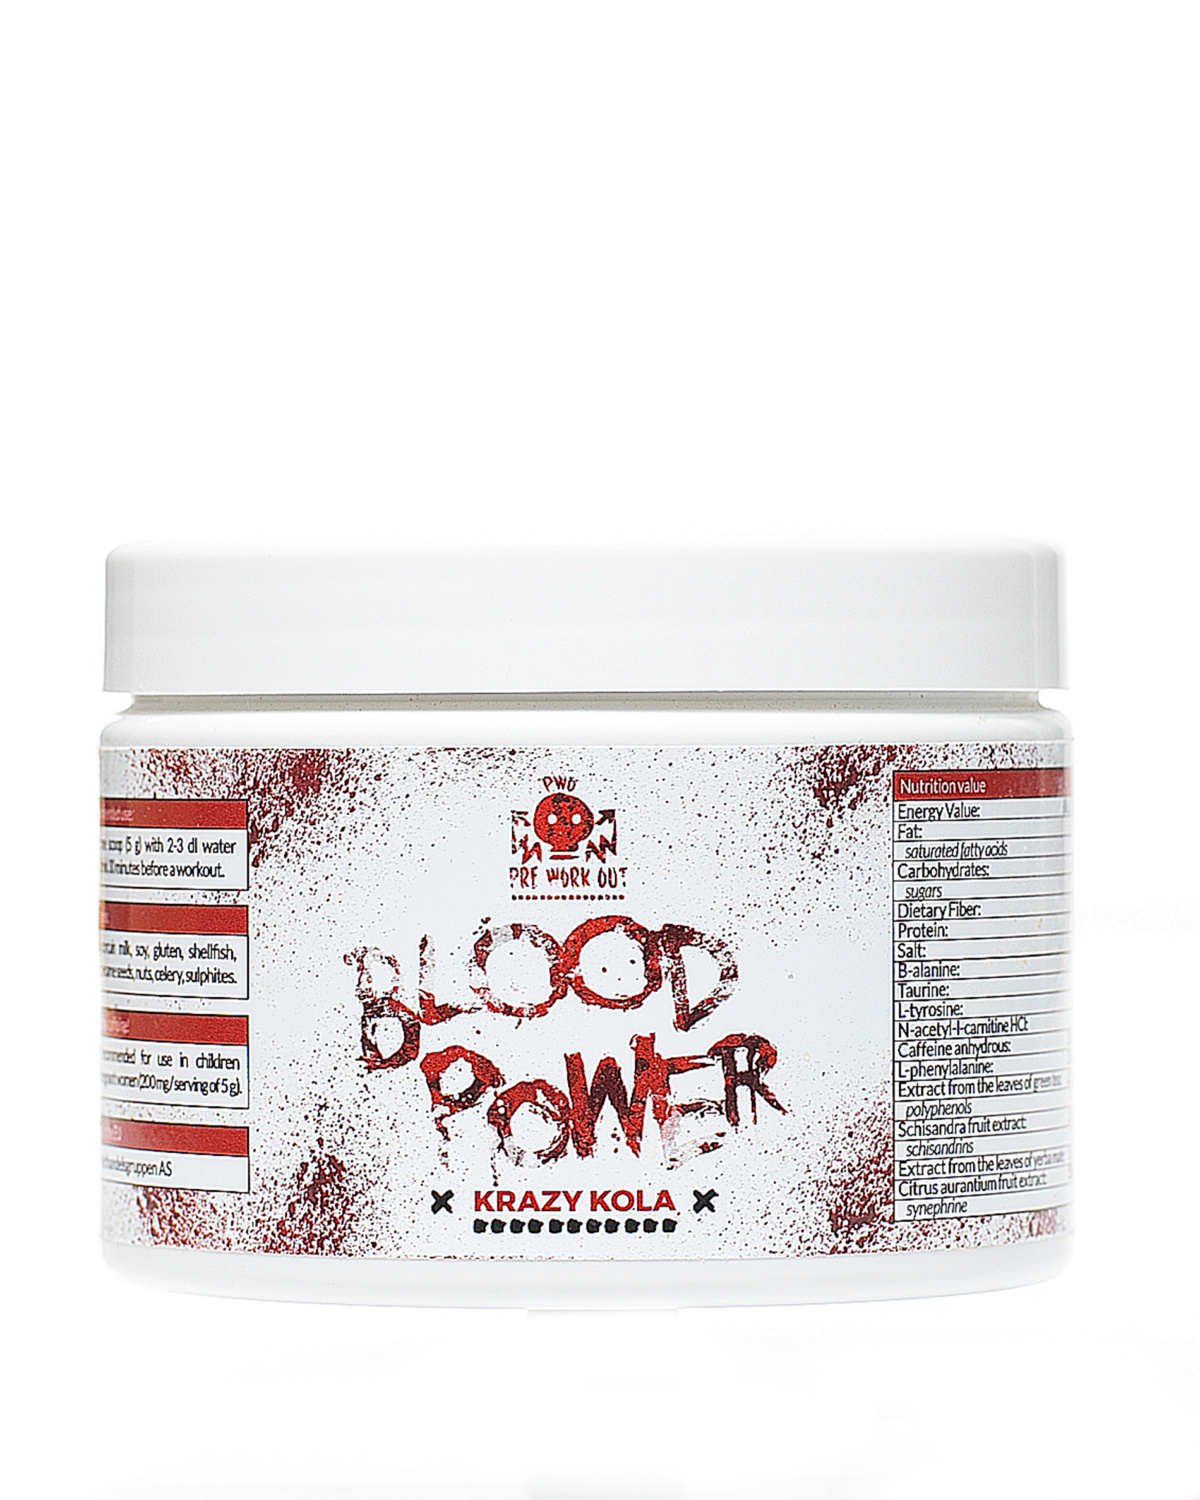 Blood Power Pre work out 1